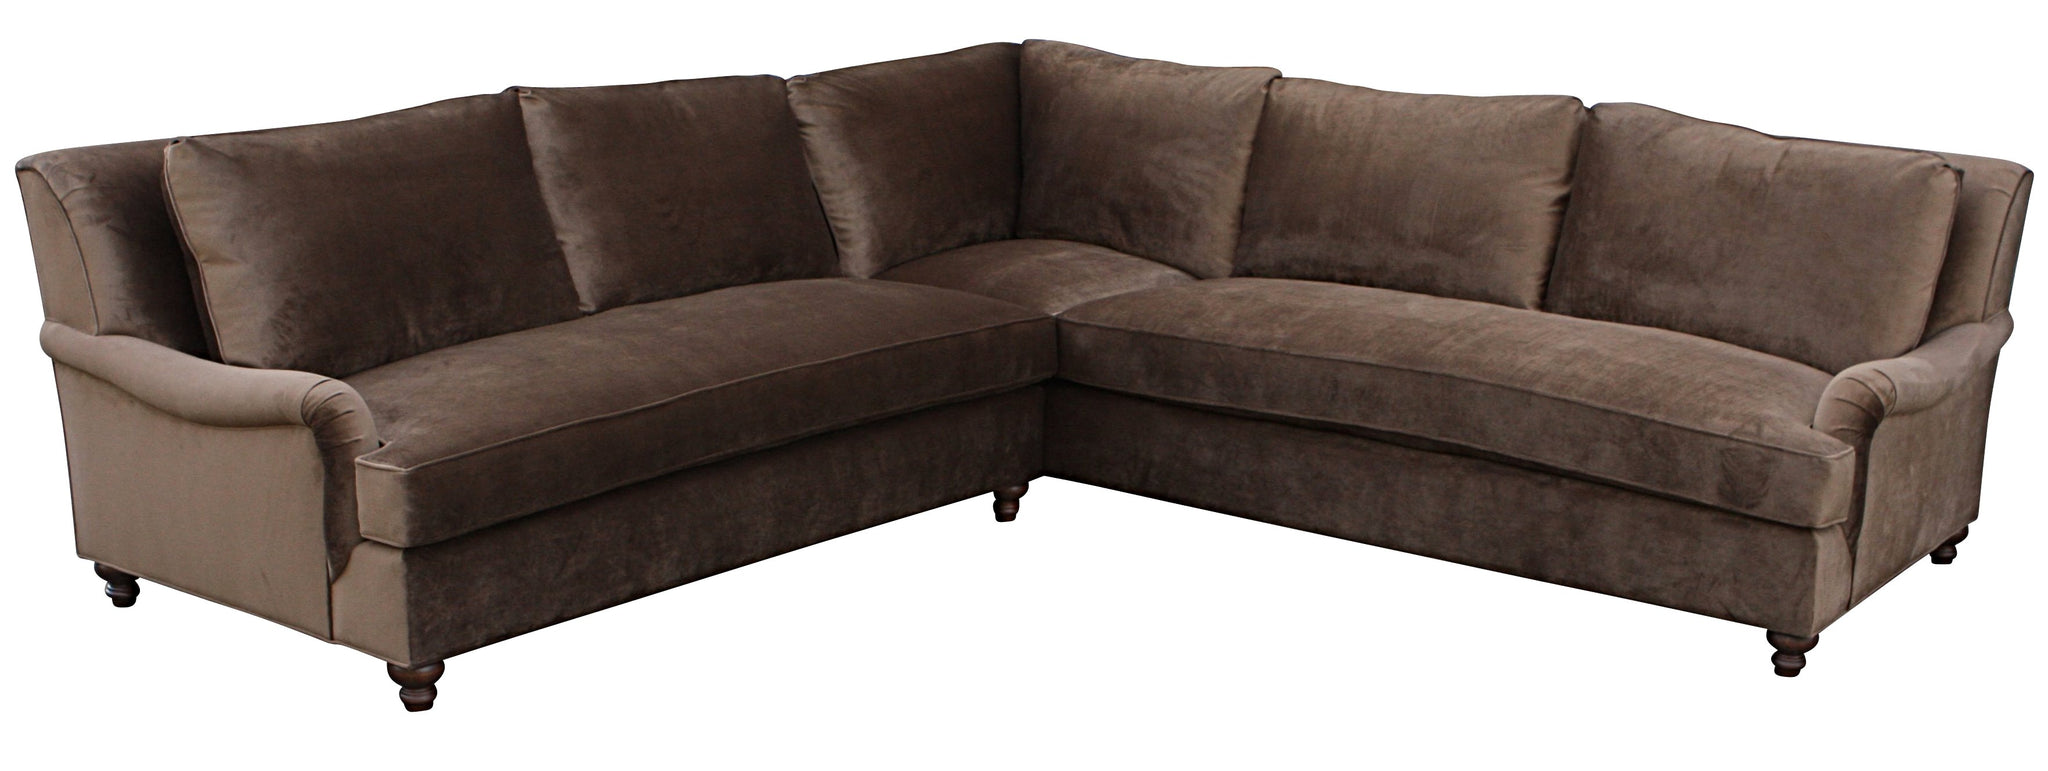 Elton Classic Sectional Sofa